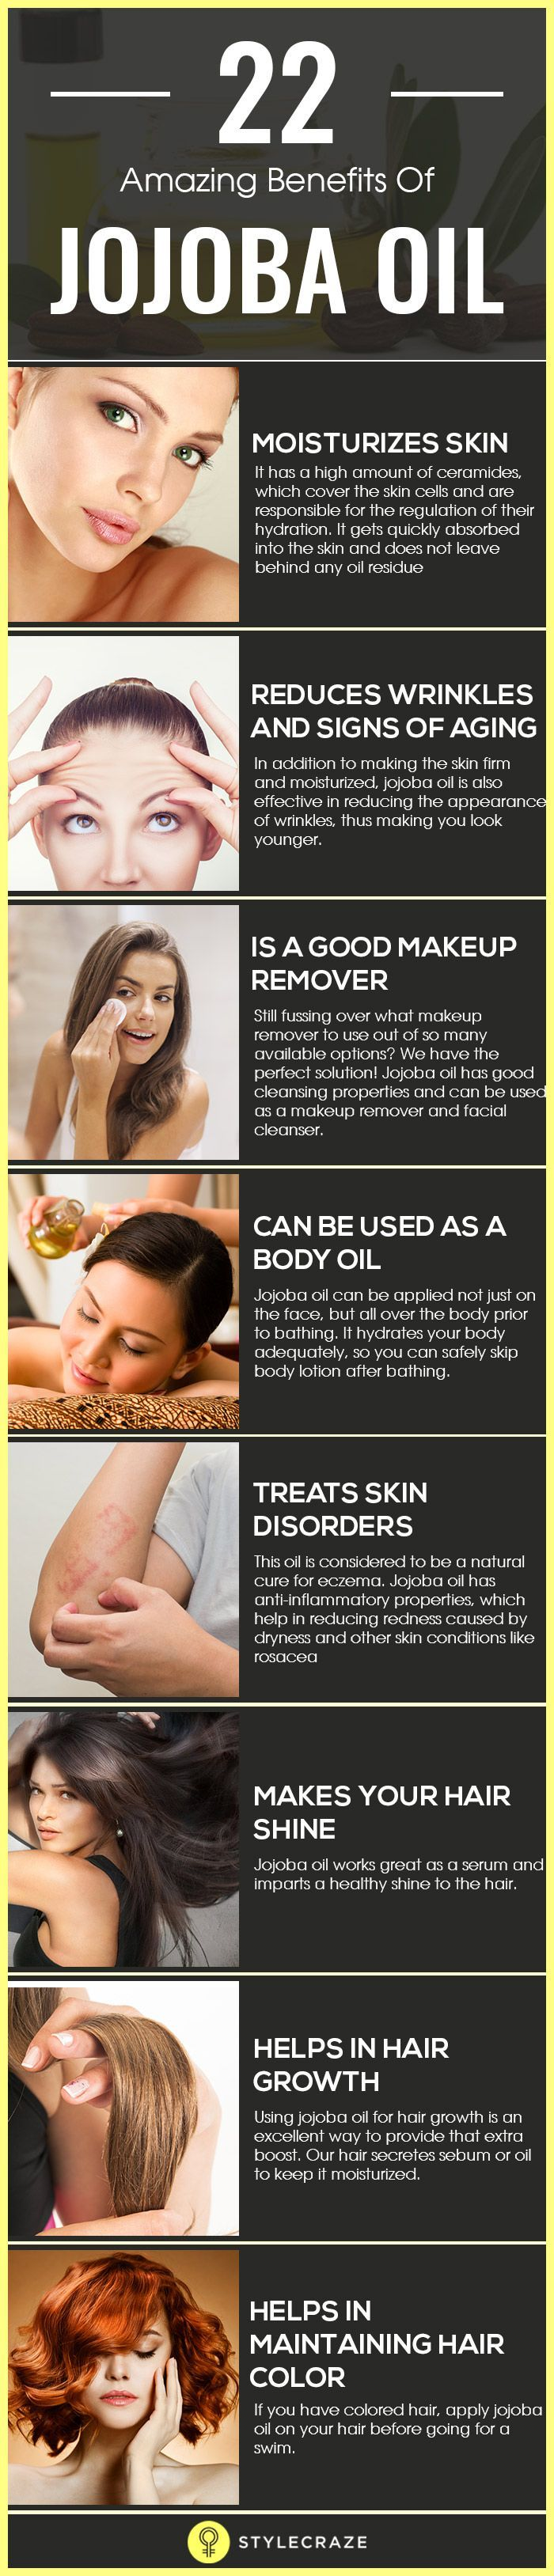 Jojoba oil is indeed a blessing as it is rich in important vitamins and minerals, including vitamins E and B-complex, zinc, copper, selenium, chromium, and iodine. And guess what? It suits all skin types. It is light, non-sticky, odorless, and has a long shelf life.